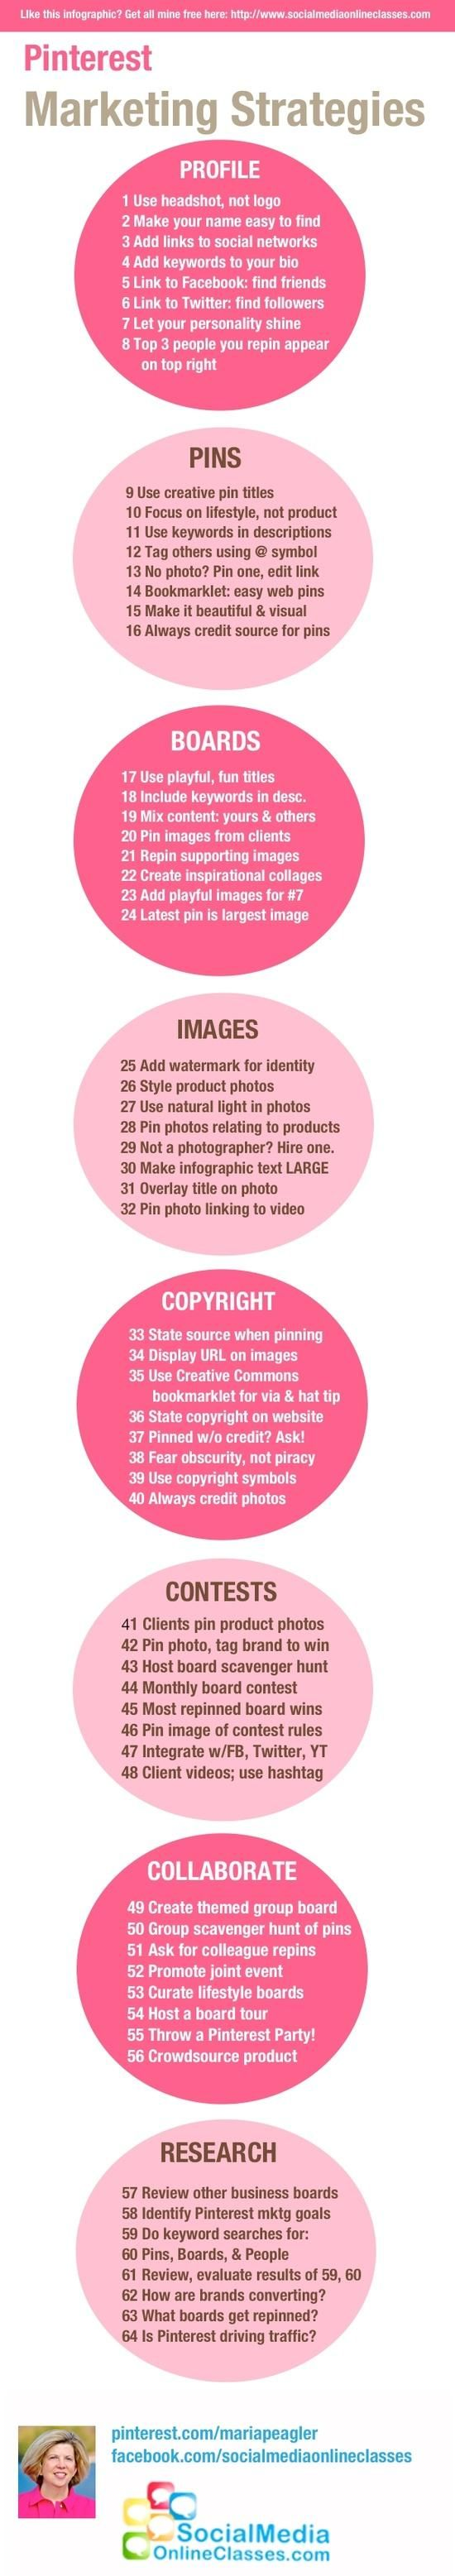 New to Pinterest? Check out this infographic: 64 Pinterest Marketing Tips and Tactics